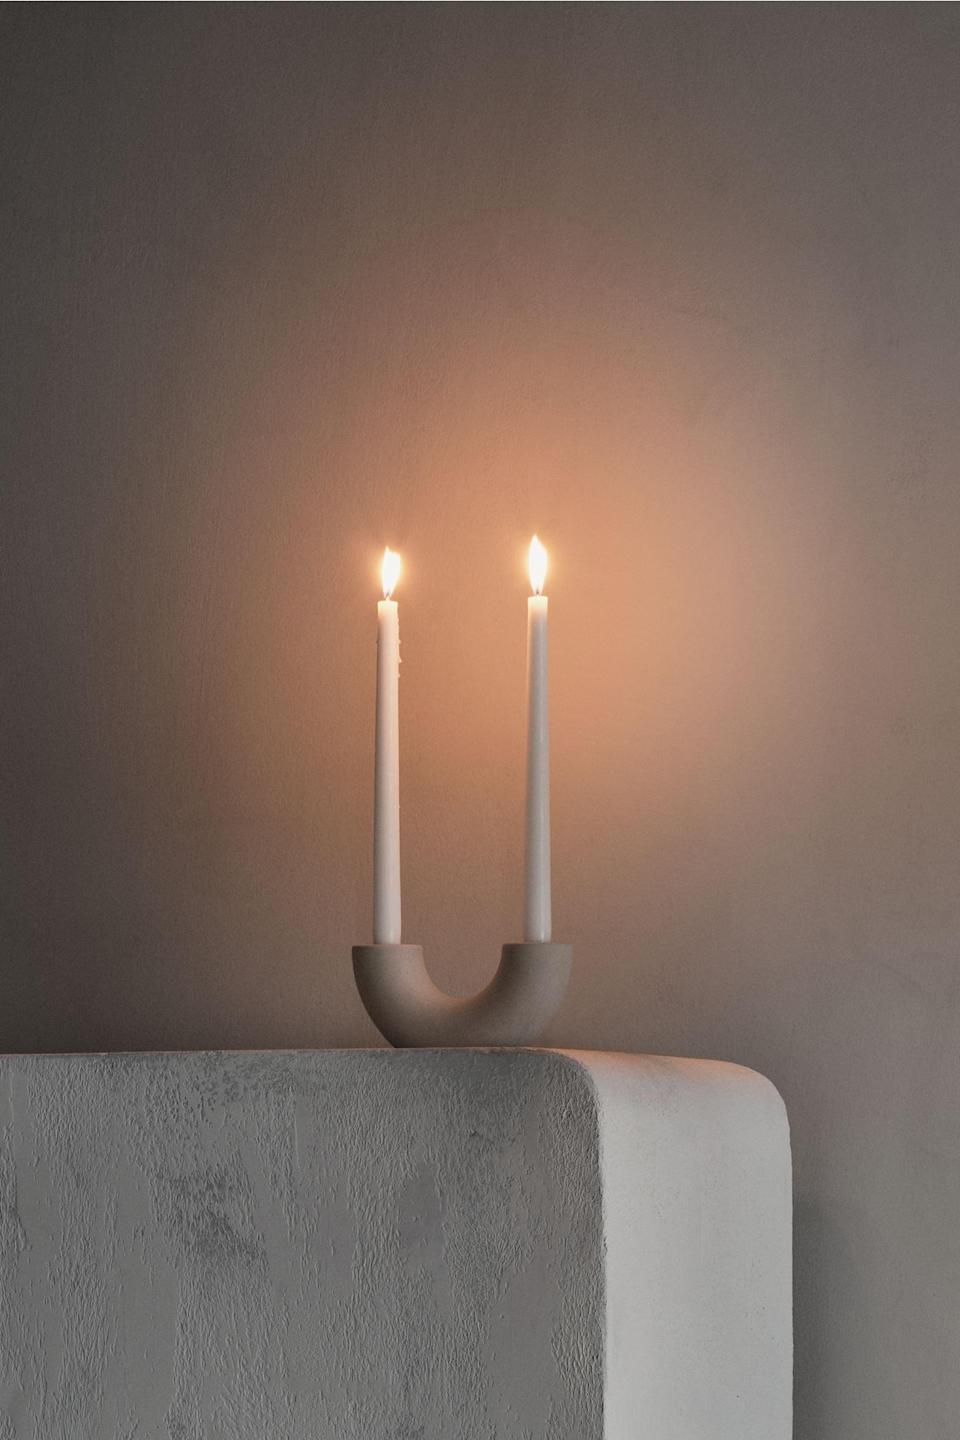 <p>The shape of this <span>Ceramic Candlestick</span> ($18) makes it quirky, bringing lots of personality to the surface you place it on. We love the elevated look. </p>